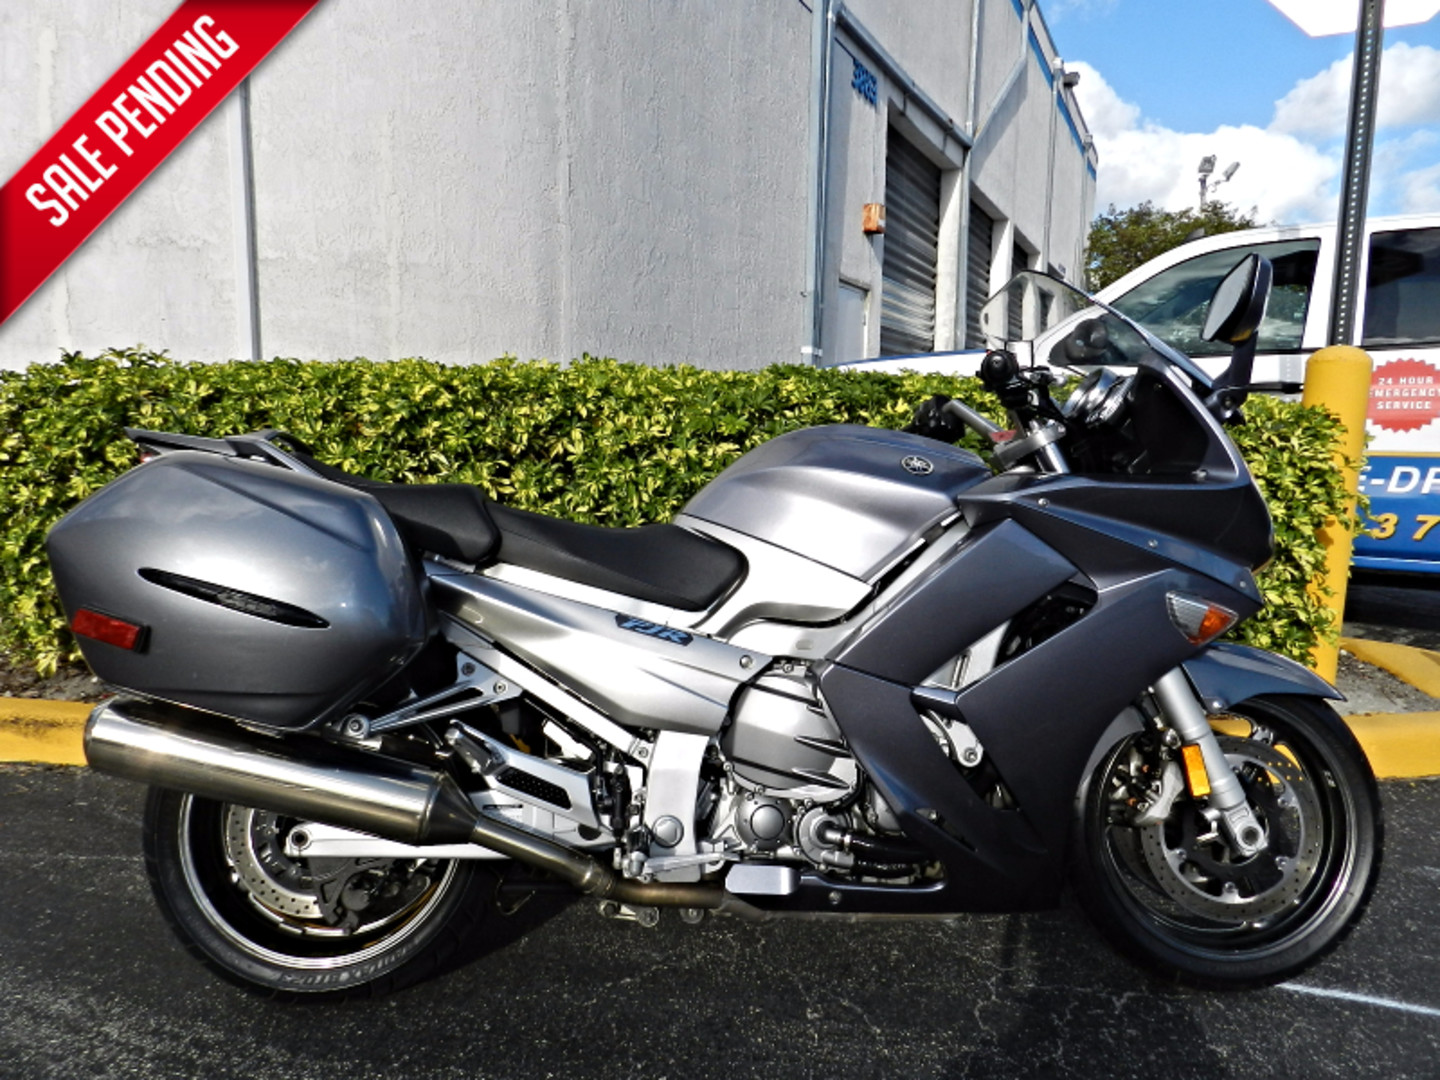 2006 yamaha fjr1300ae fjr 1300 ae 1300ae fjr1300 electric. Black Bedroom Furniture Sets. Home Design Ideas